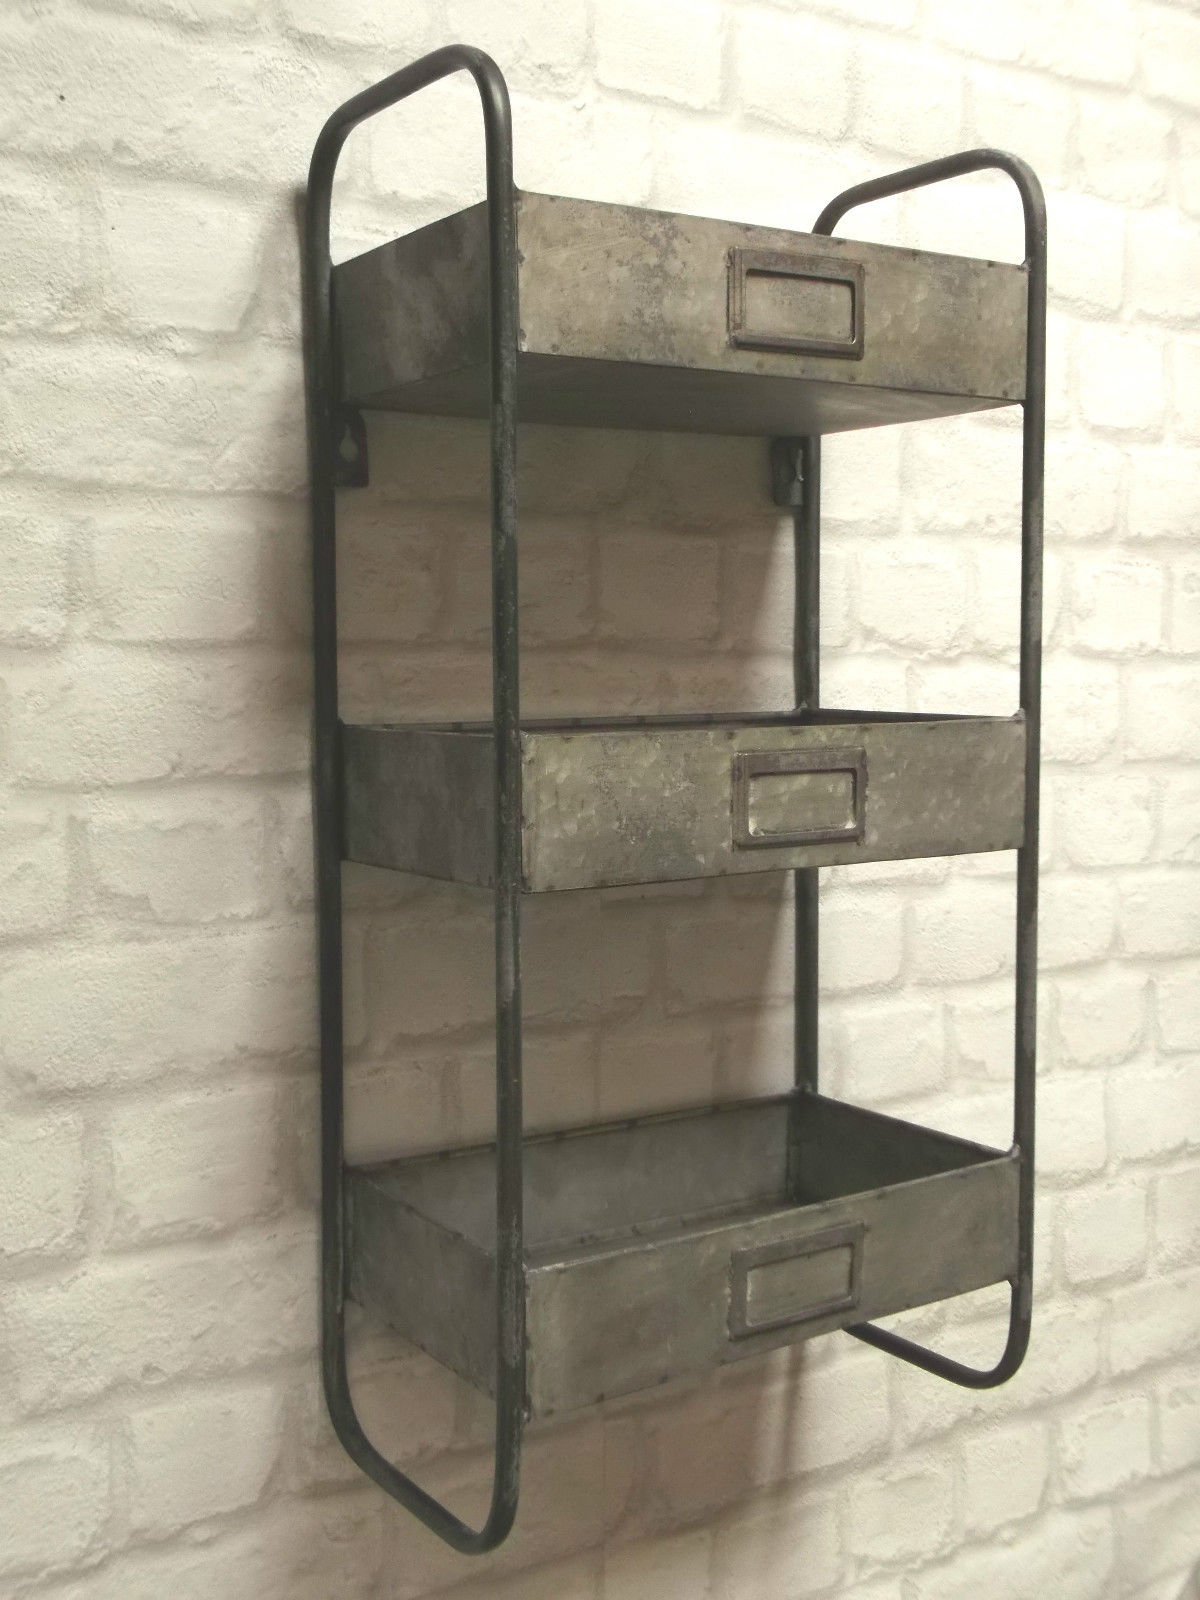 Vintage industrial style metal wall shelf unit storage cupboard cabinet rack new amazing grace - Wall metal shelf ...